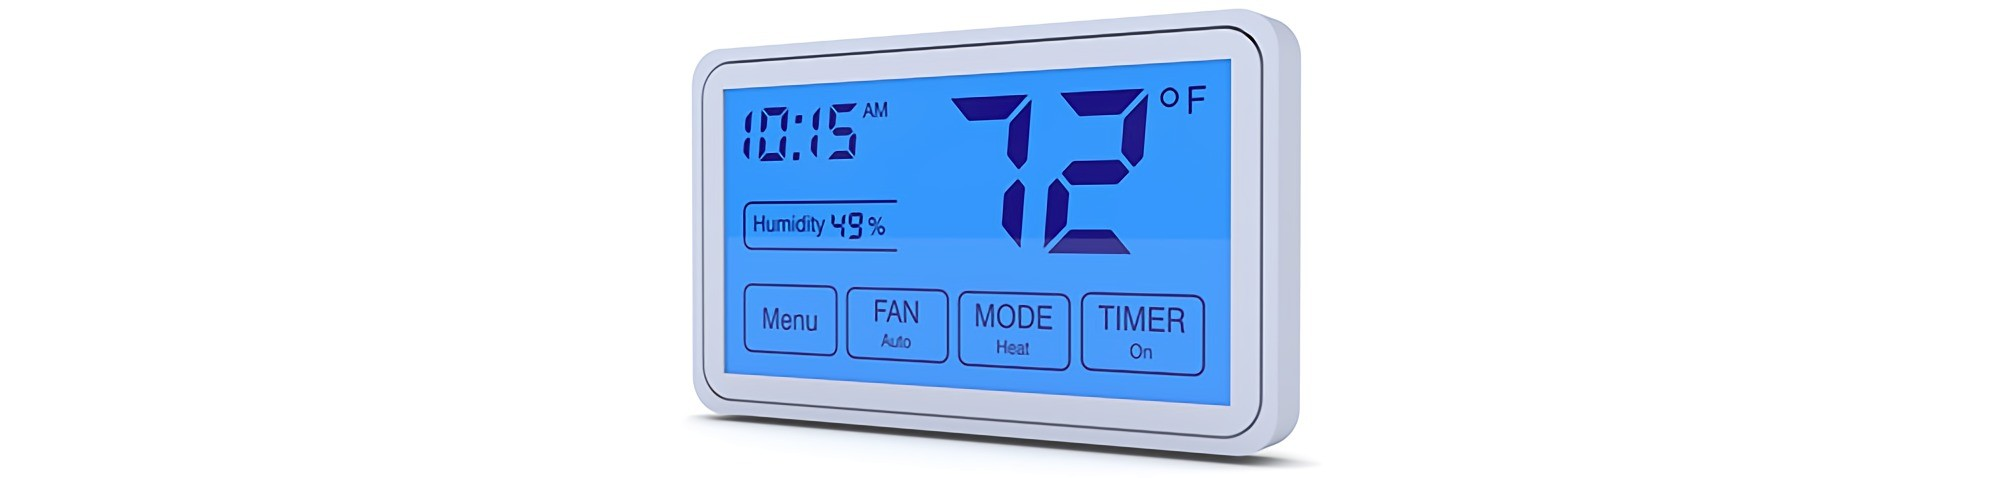 smart thermostat HVAC system